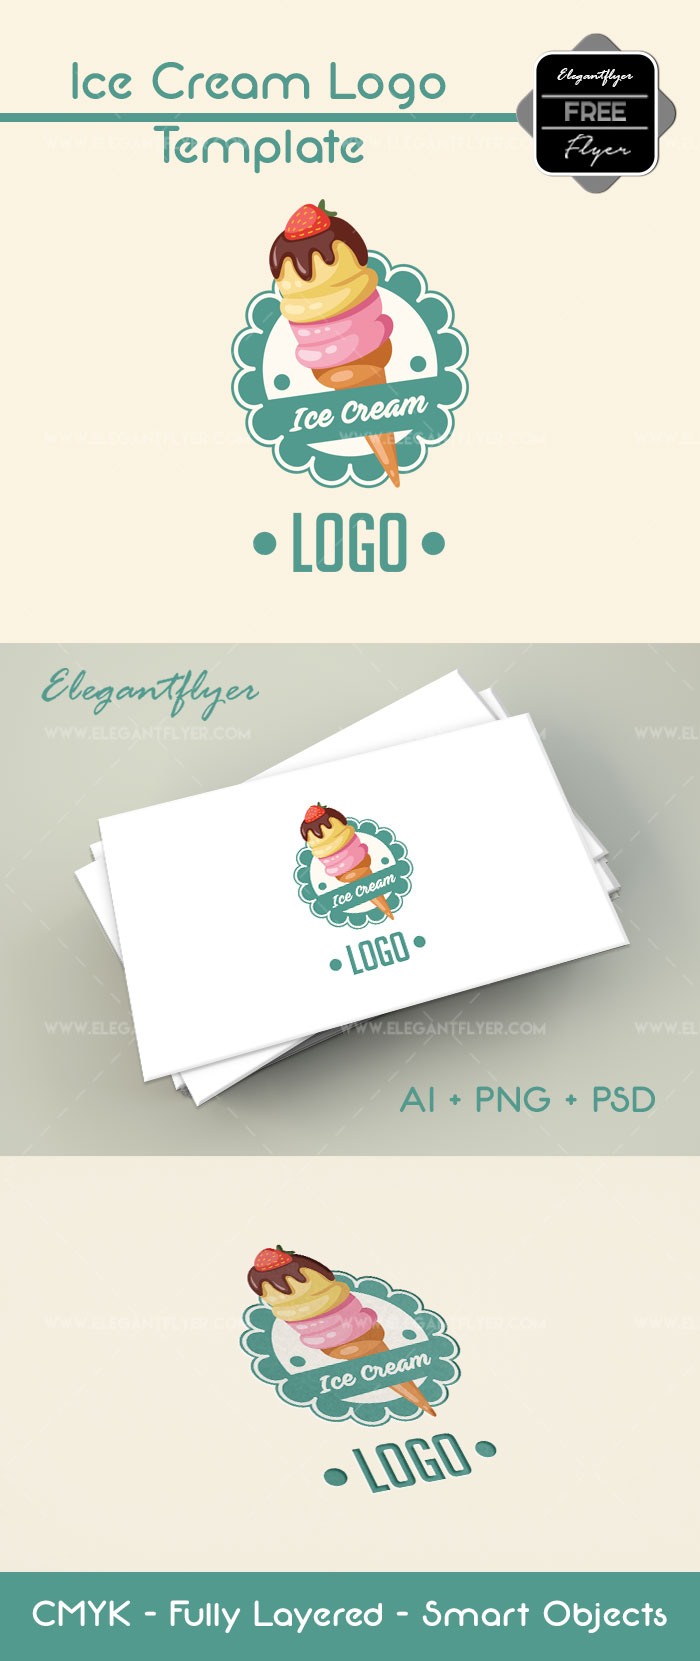 Ice Cream – Free Logo Template